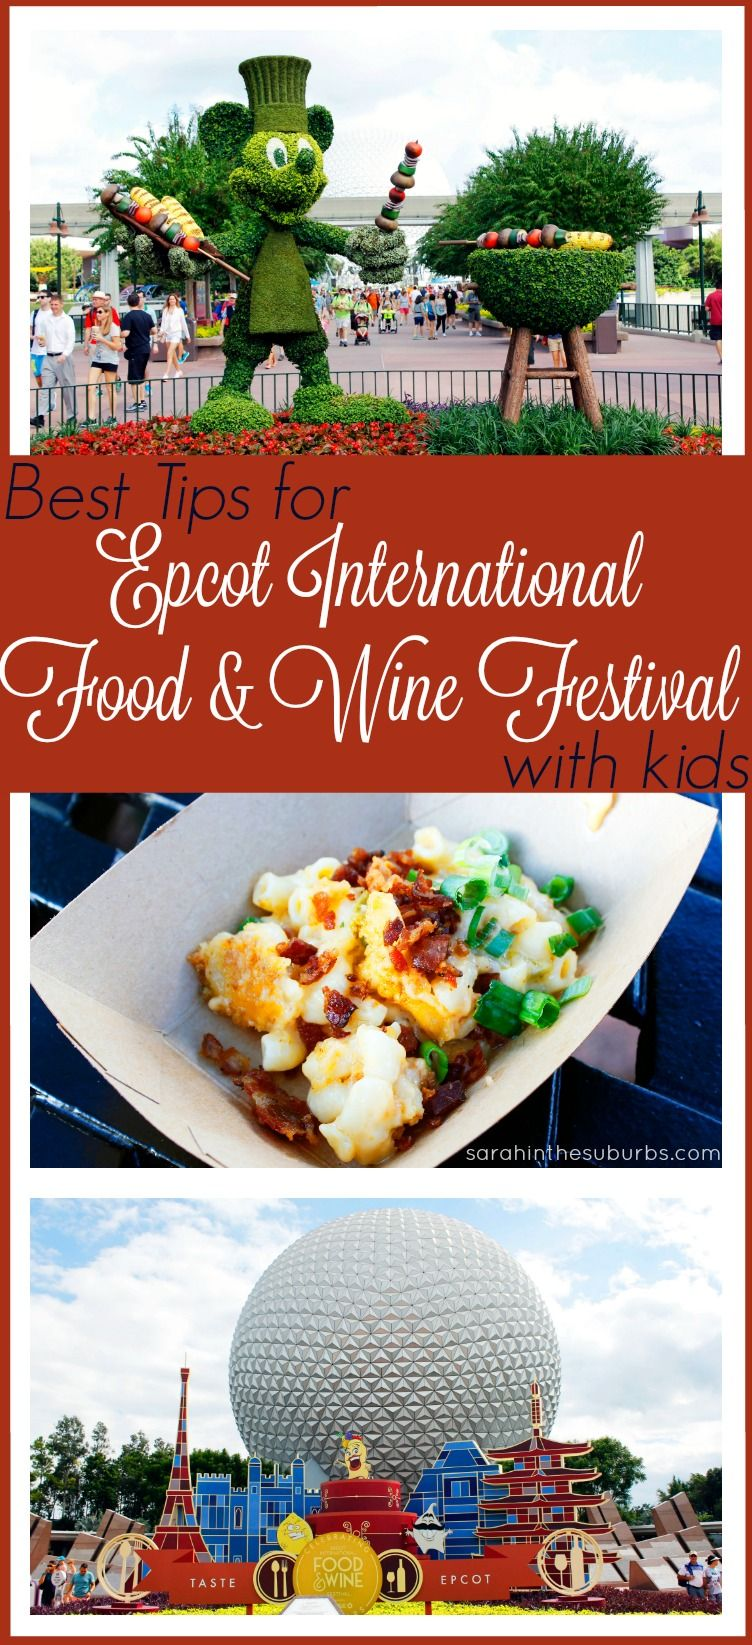 Best Tips For Epcot Food And Wine Festival With Kids With Images Disney World Food Epcot Epcot Food